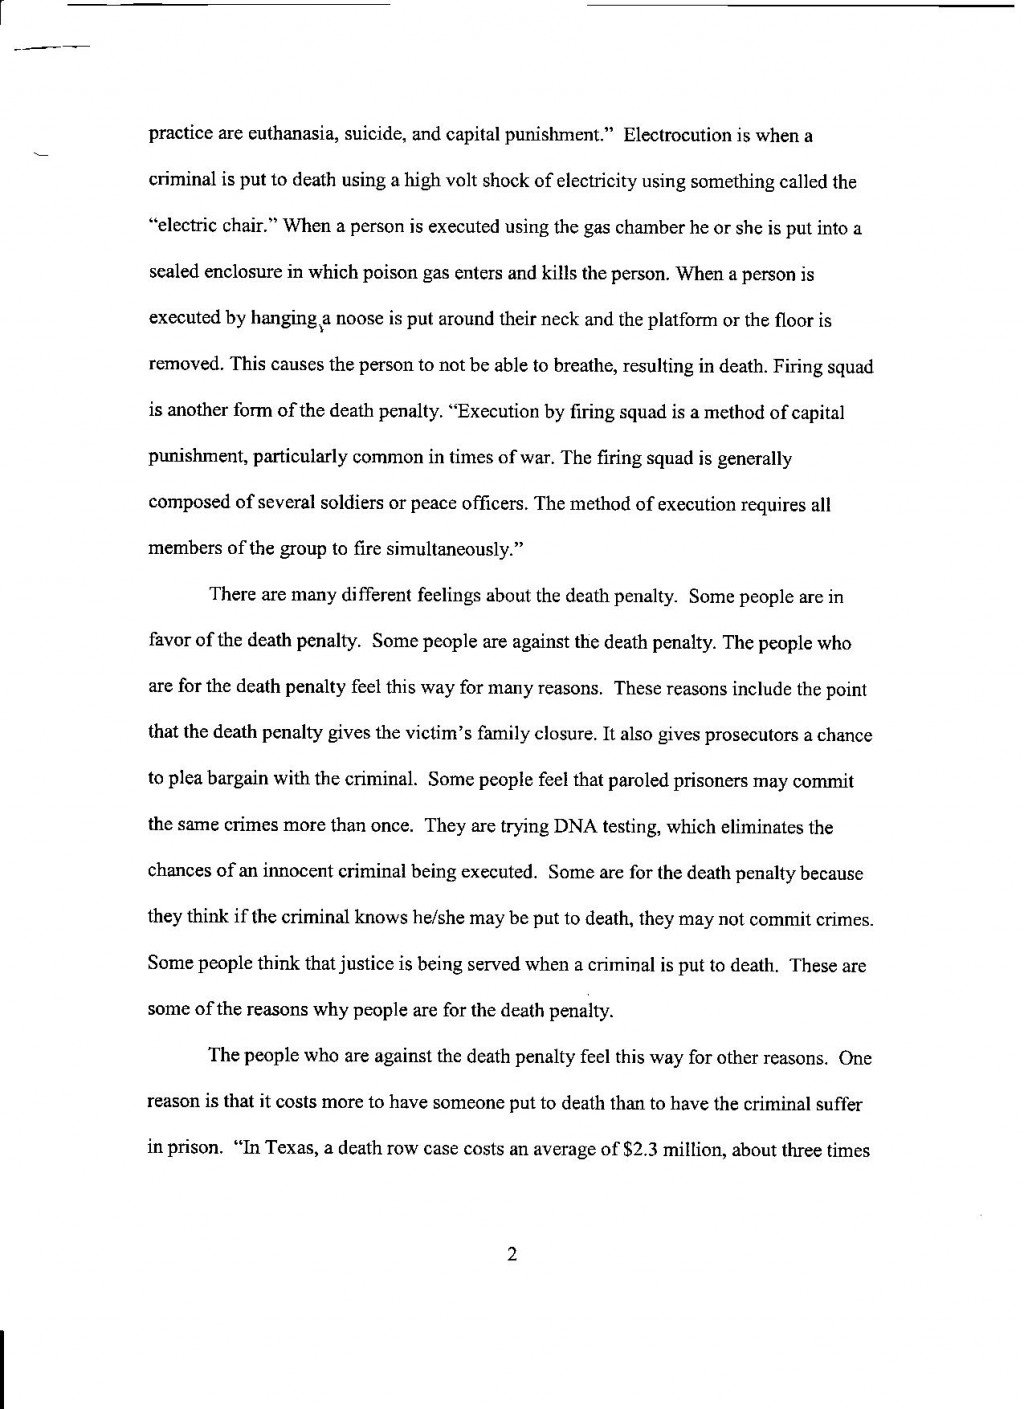 008 Argumentative Essay On Death Penalty Pg Unbelievable Ideas Persuasive About In The Philippines Pro Large